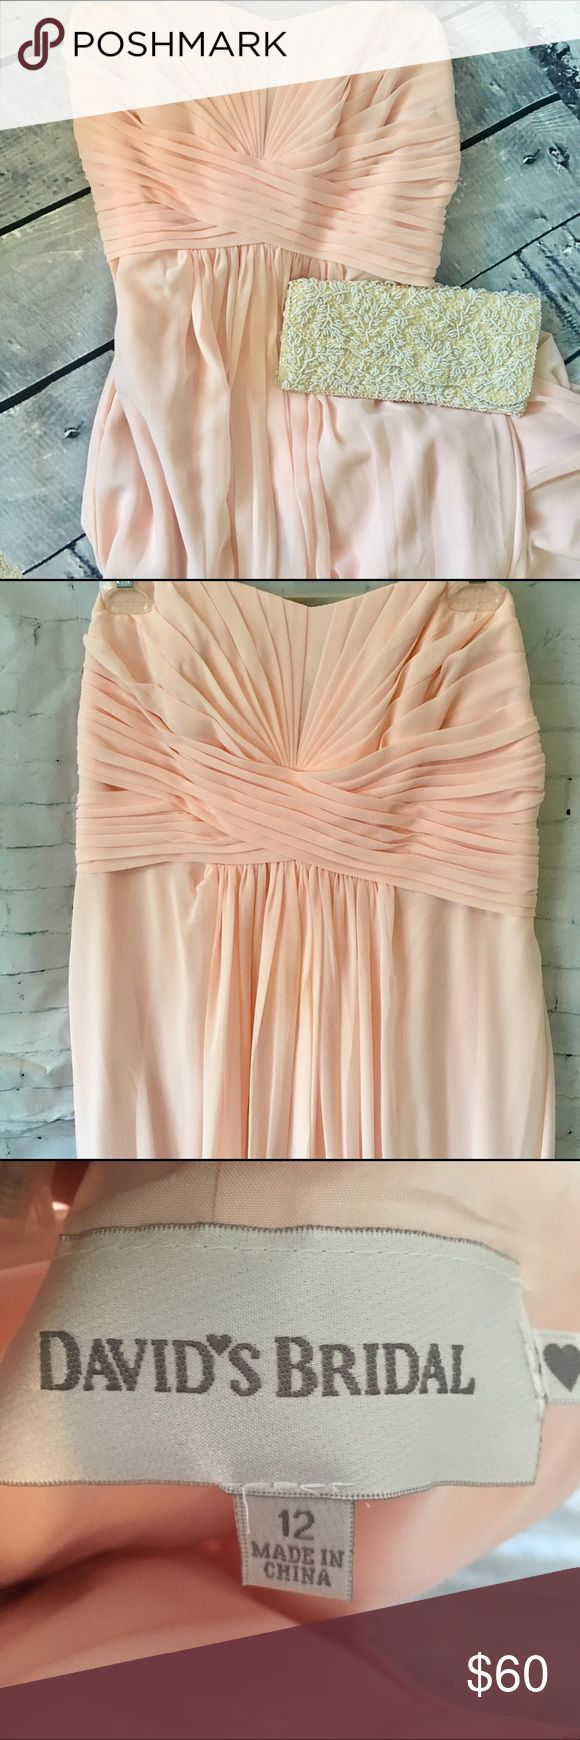 """David's Bridal """"Petal"""" Strapless Bridesmaid Gown David's Bridal Blush Strapless Bridesmaid Gown. Simple style can be glammed up for prom or a black tie affair! David's Bridal Dresses Prom"""